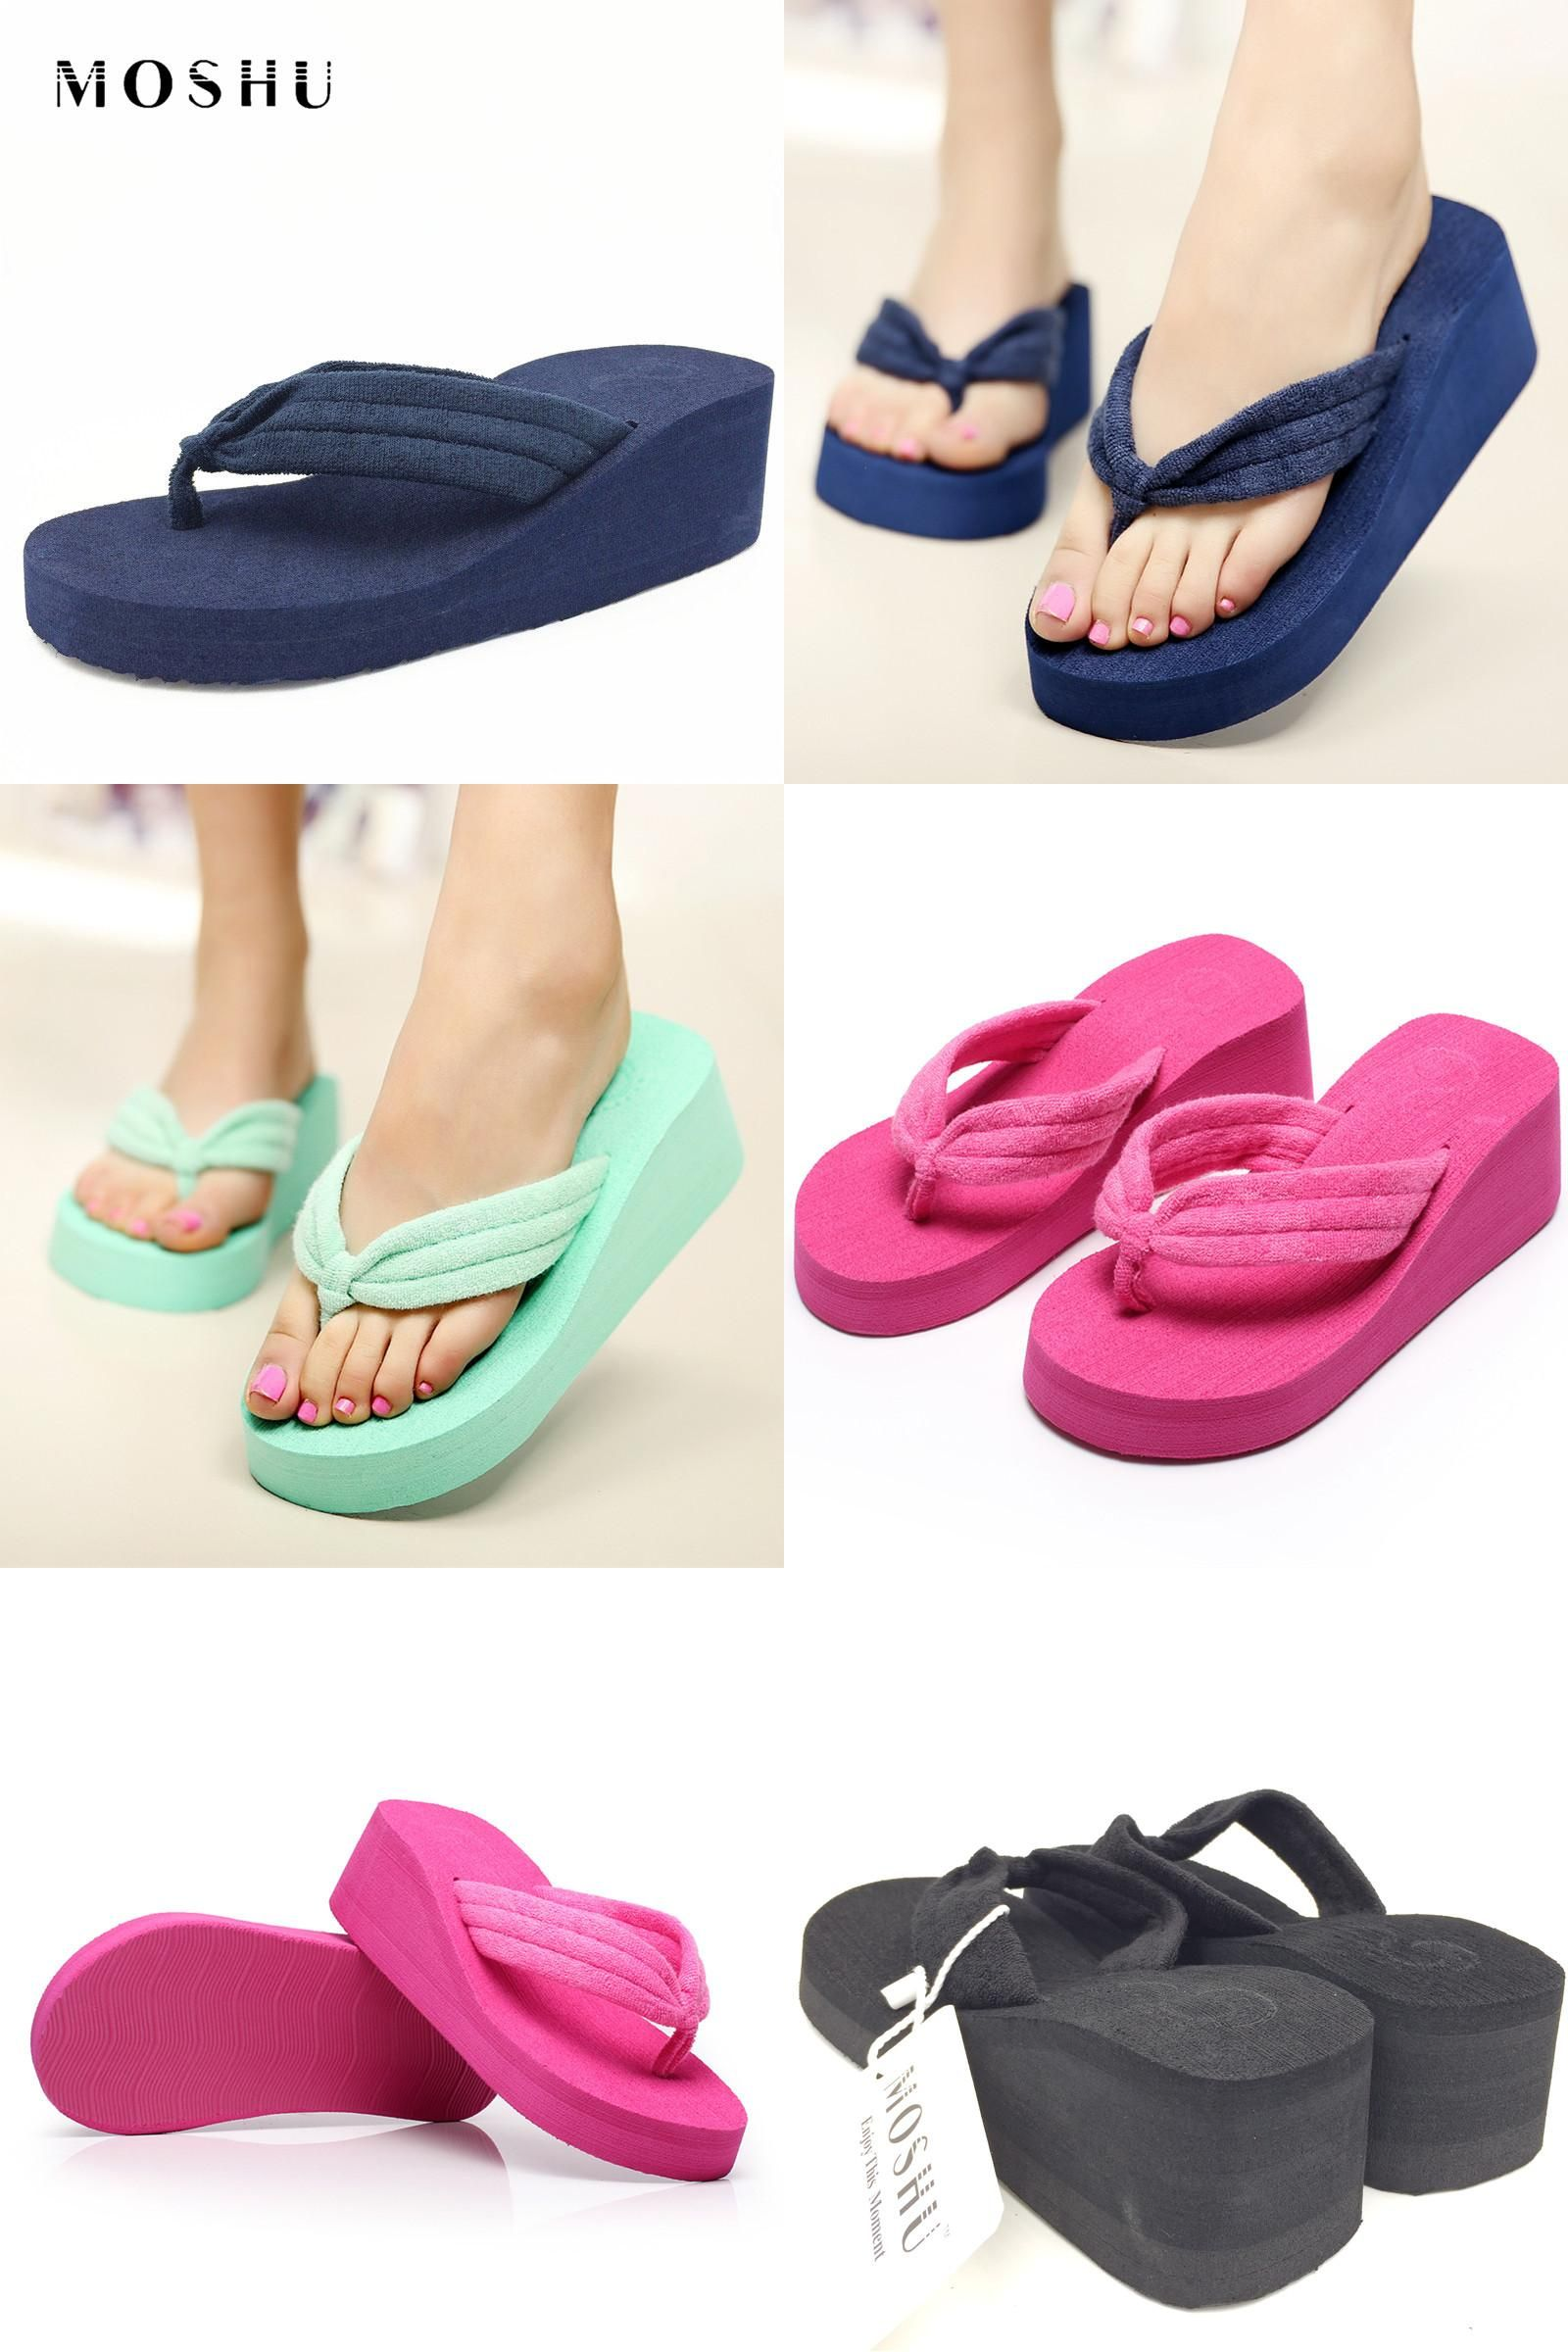 Women Ladies Bow Summer Sandals de Mujer Slippers Indoor Outdoor Flip-Flops Comfort Beach Shoes Dressy